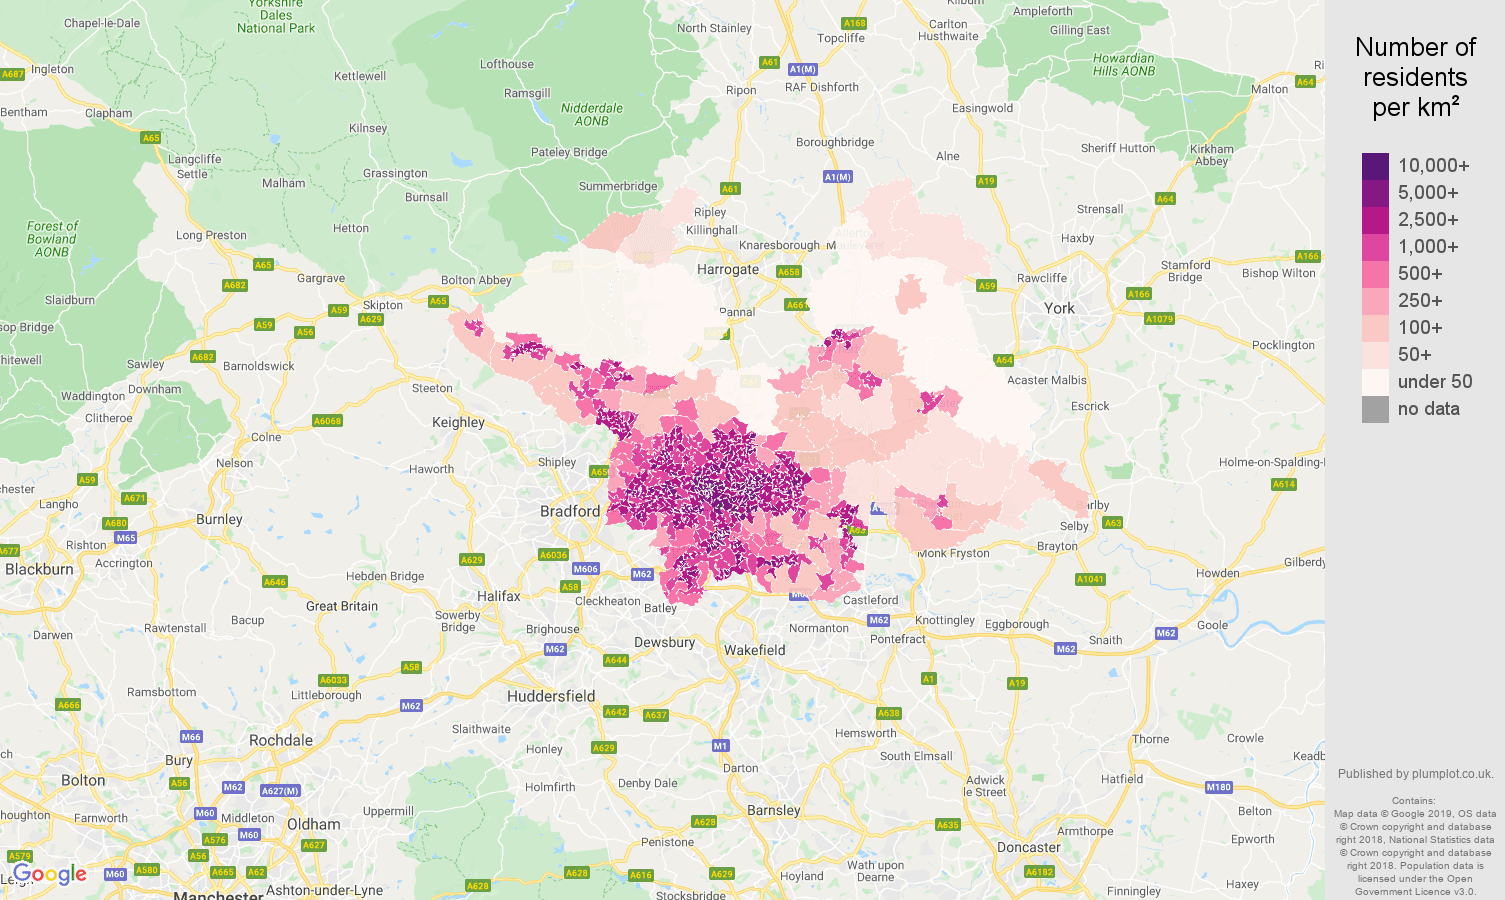 Leeds population density map